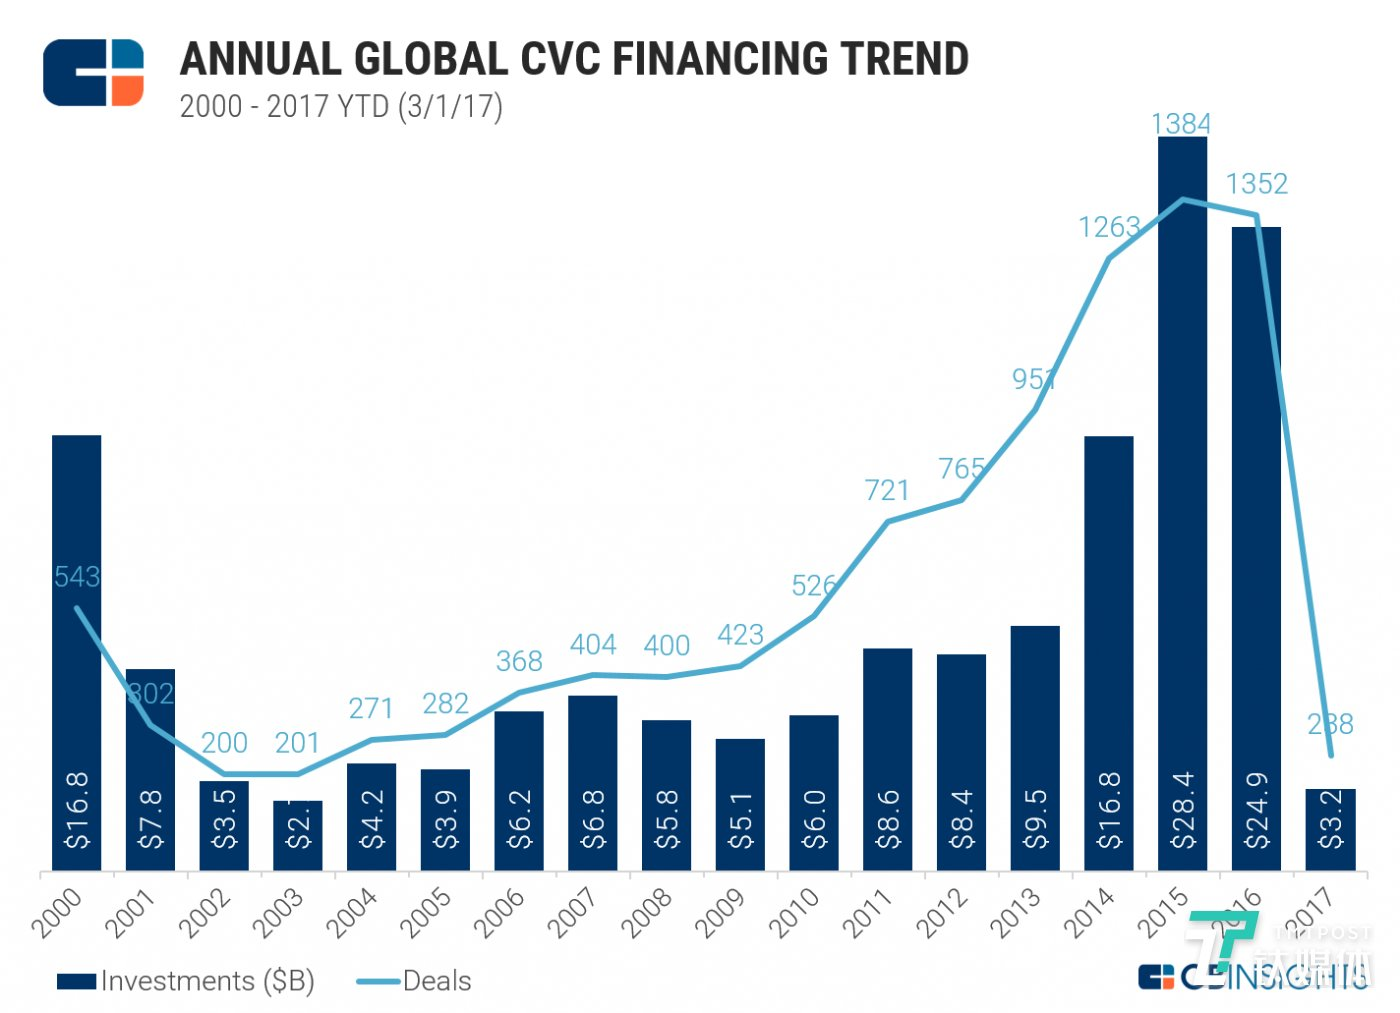 Dollars are for deals involving CVCs, which often involve non-CVC investors as well